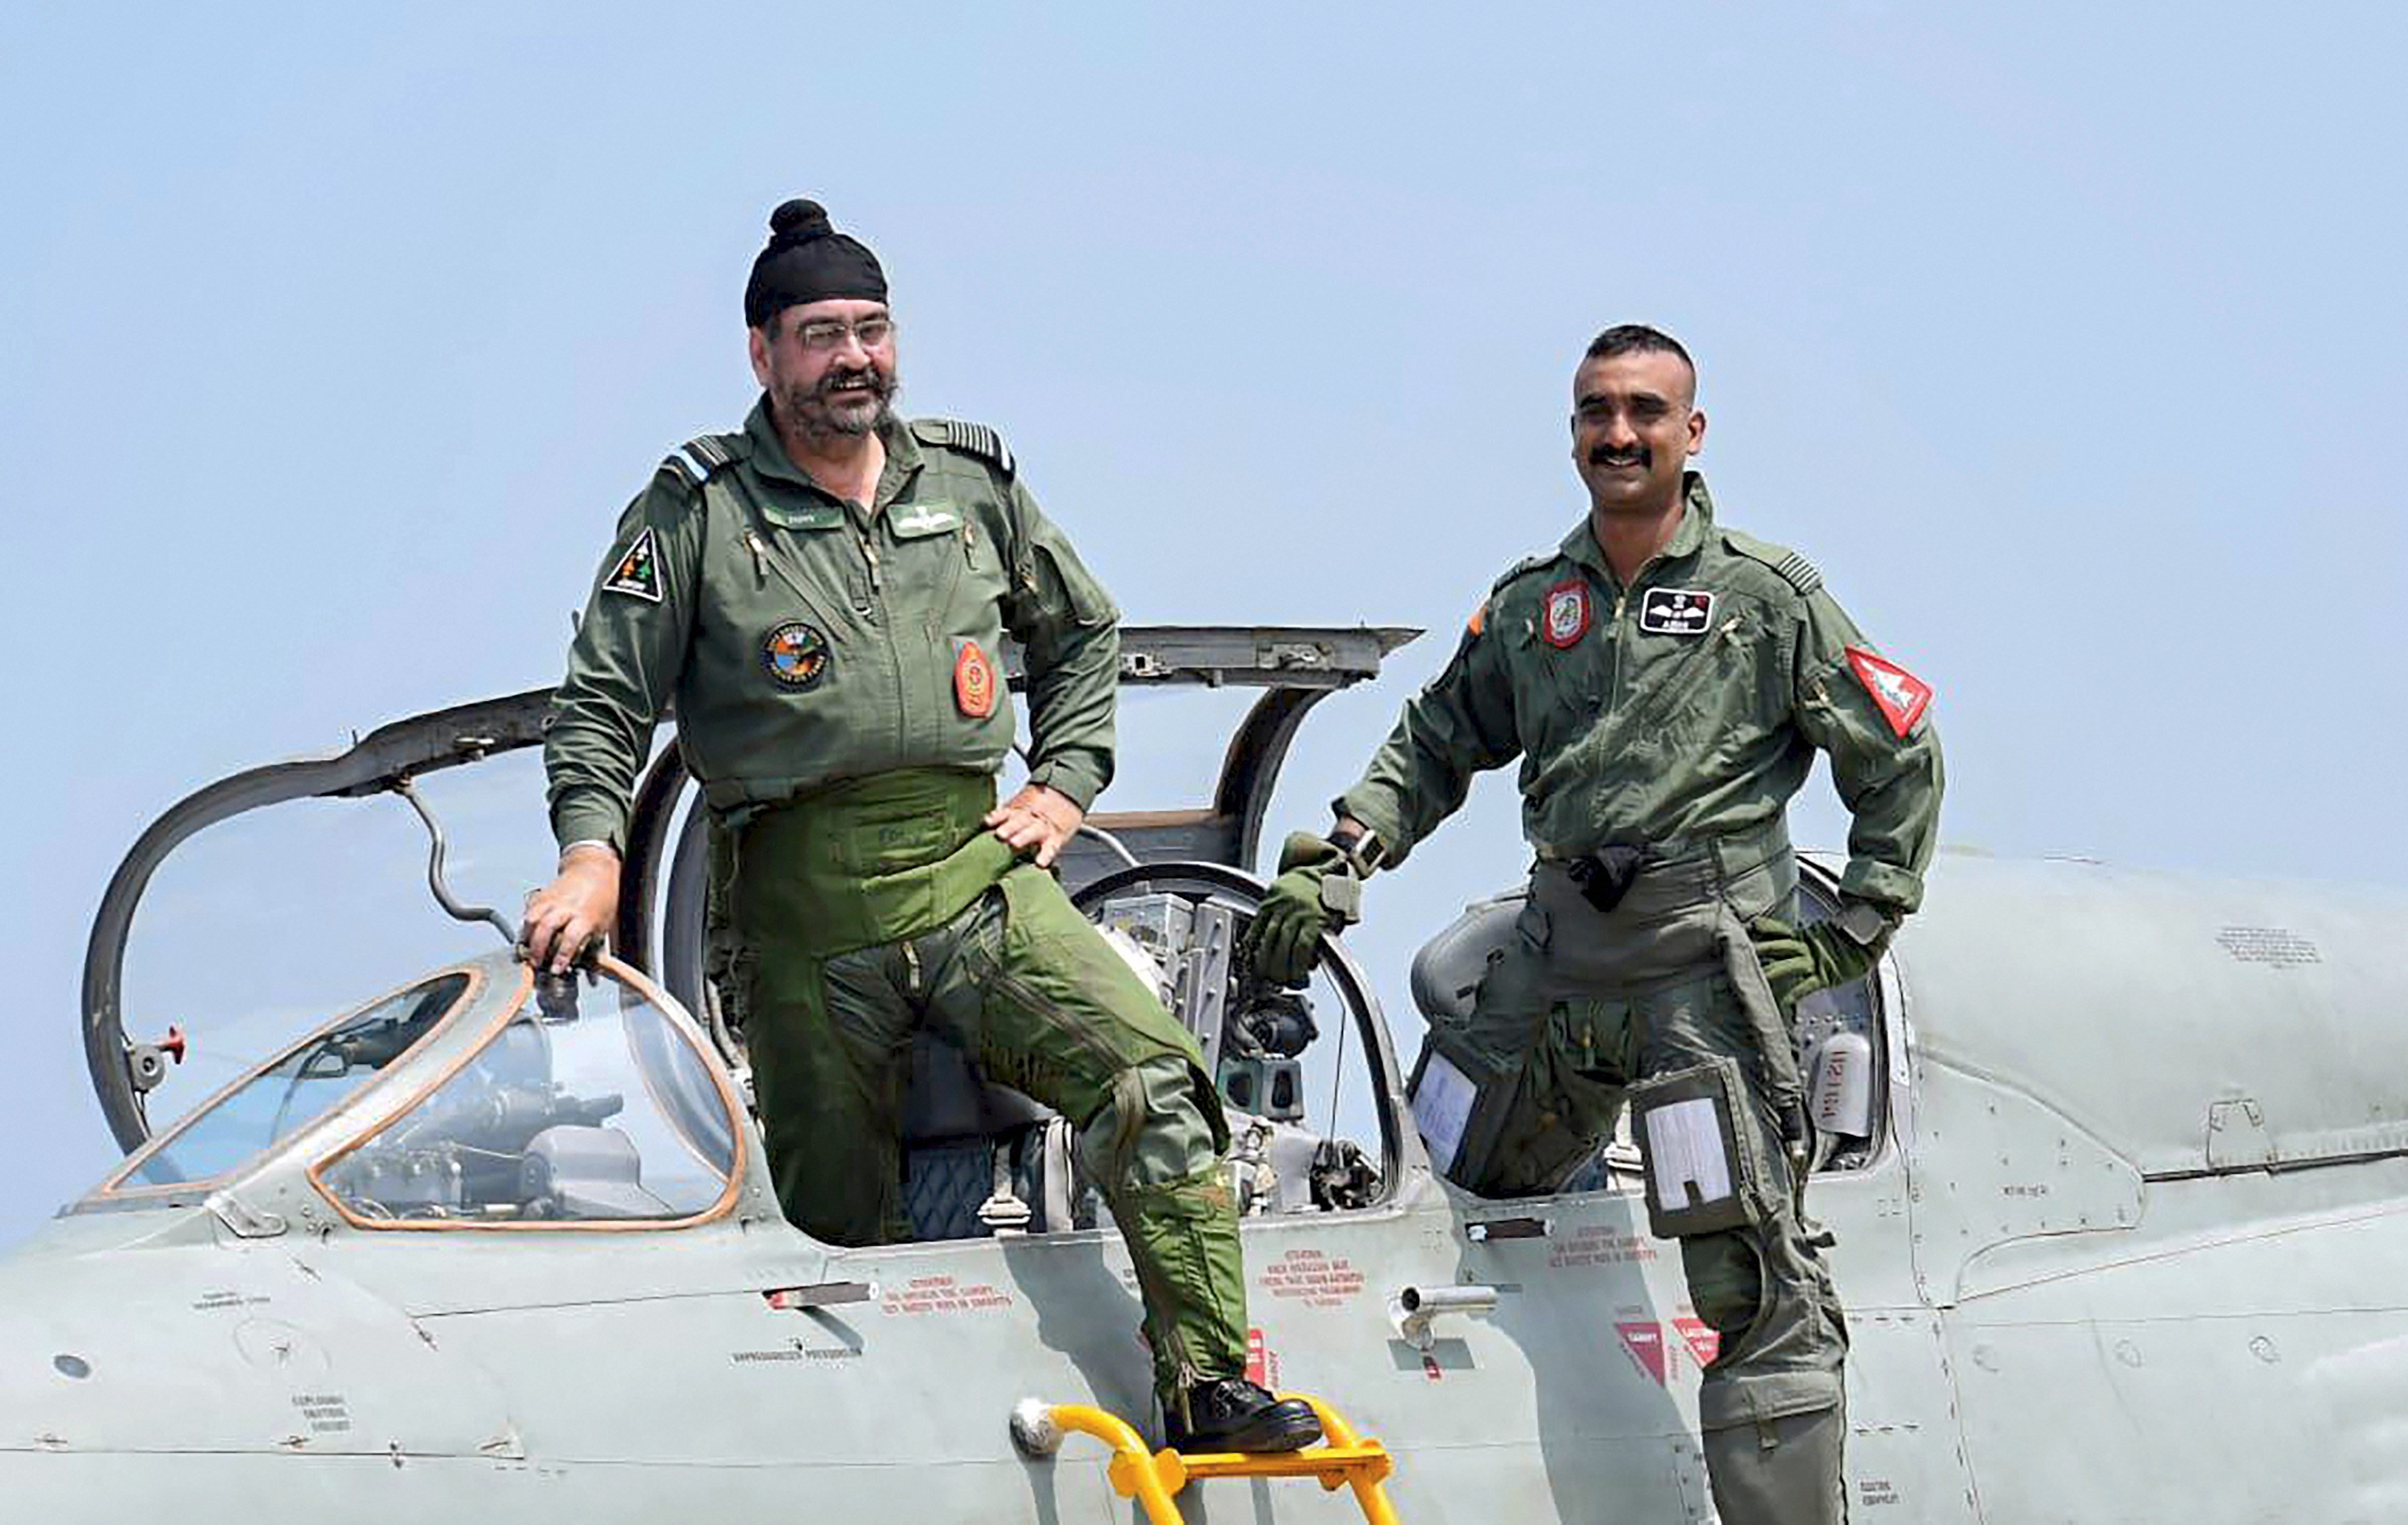 Pathankot: Air Chief Marshal BS Dhanoa and Wing Commander Abhinandan Varthaman, the IAF pilot who became the face of a tense military confrontation between India and Pakistan in February, pose for a photograph after a sortie on the MiG 21 jet, at Airforce Station, Pathankot, Monday, Sept 02, 2019.